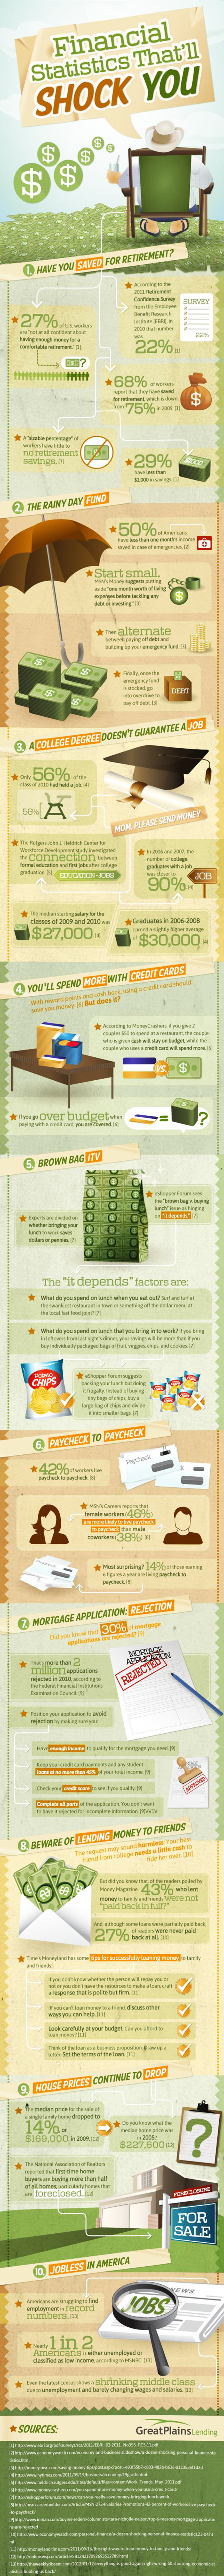 Shocking Personal Finance Statistics Infographic